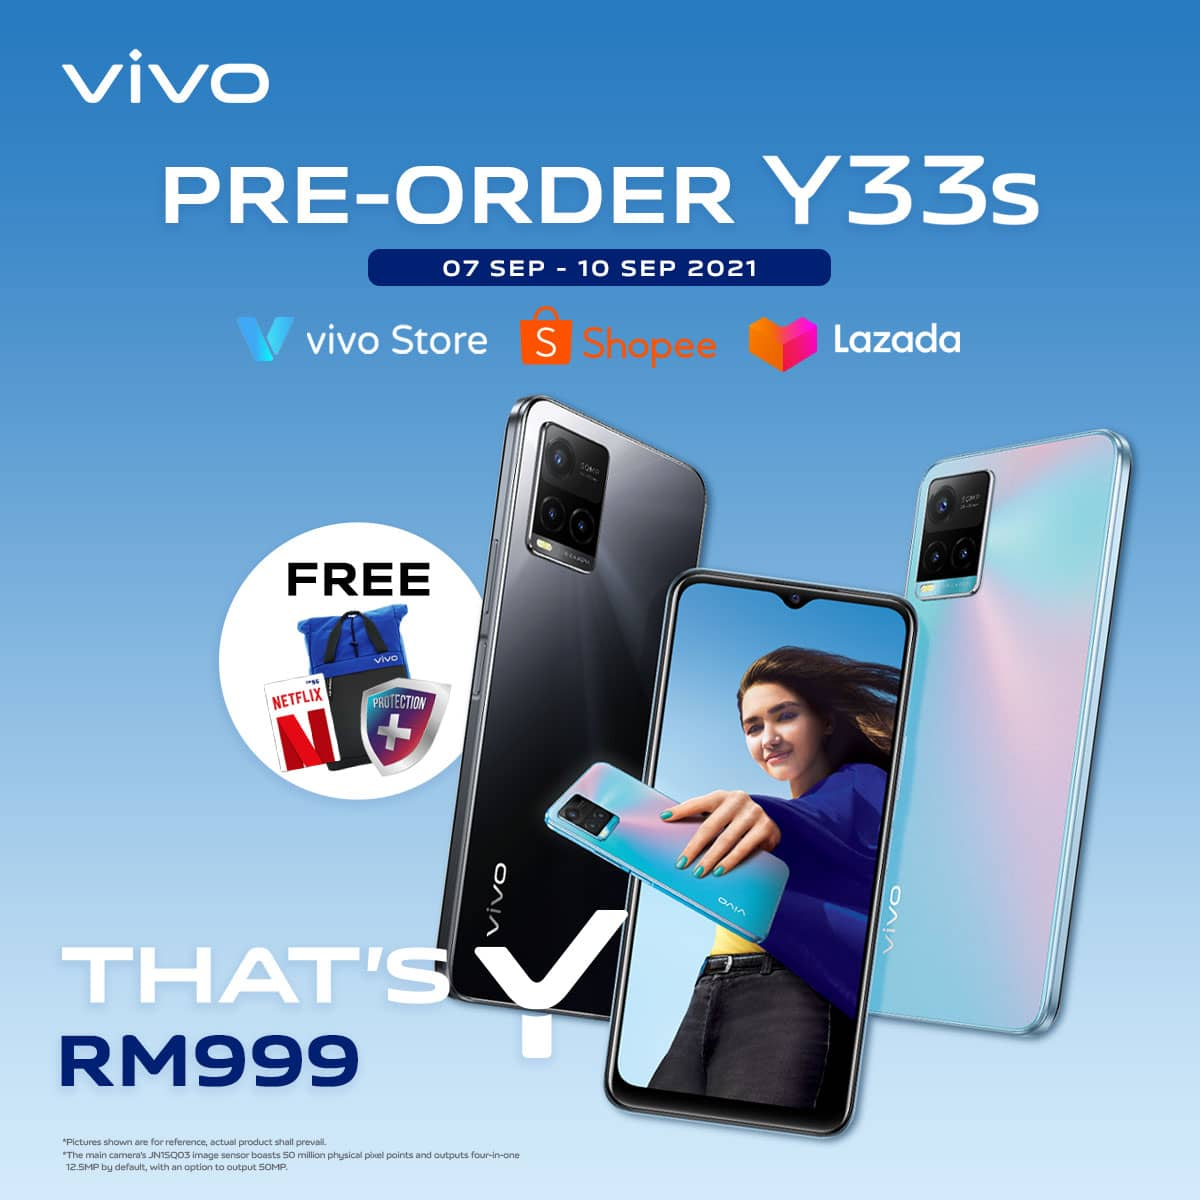 vivo Malaysia is Launching vivo Y33s - Sleek and Trendy Smartphone that Sparks Creativity